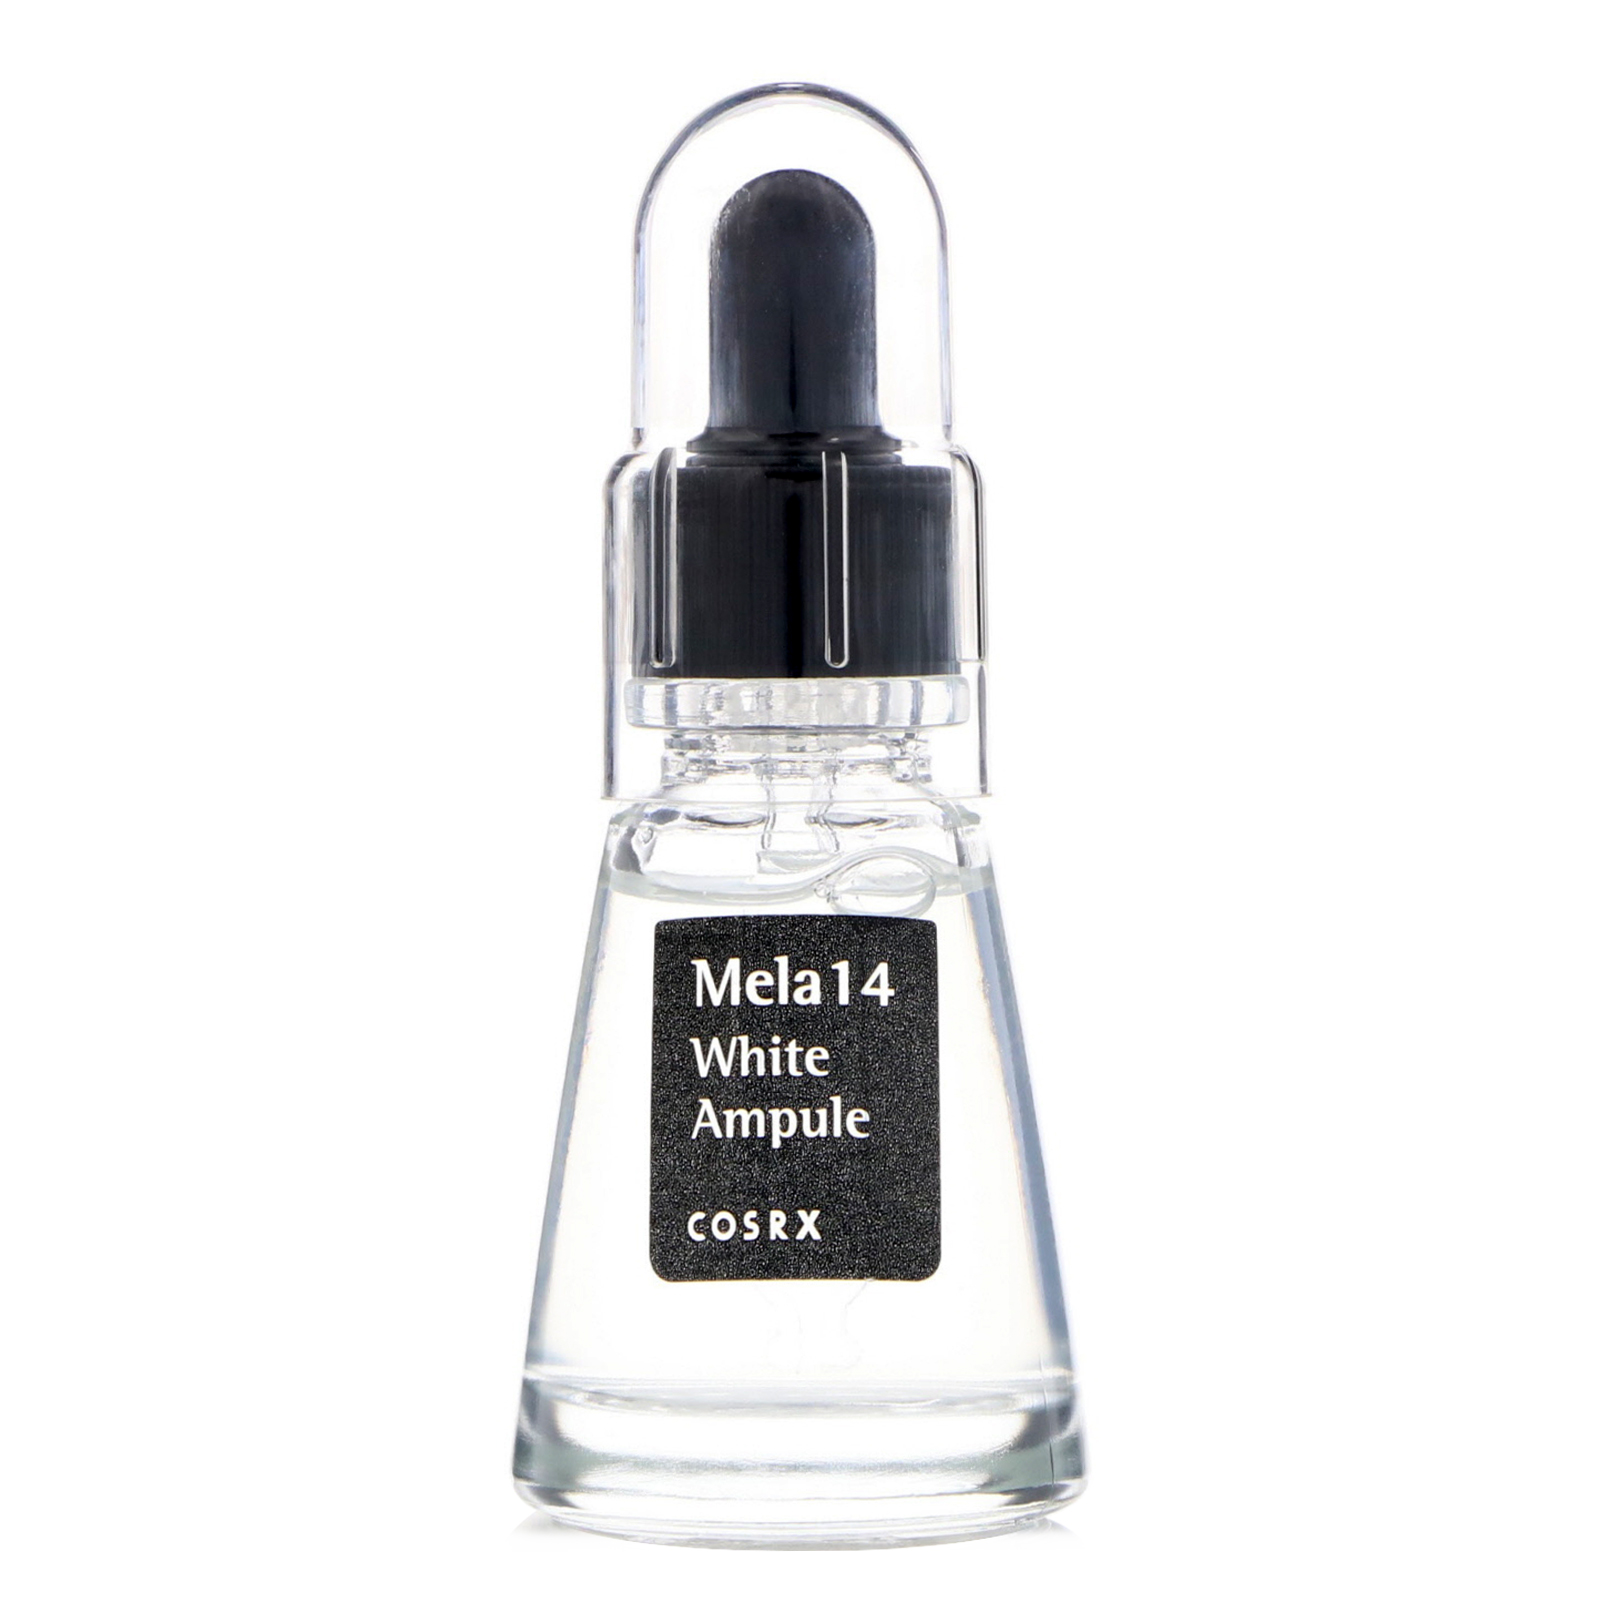 Cosrx, Mela 14 White Ampule, 0.67 fl oz (20 ml)